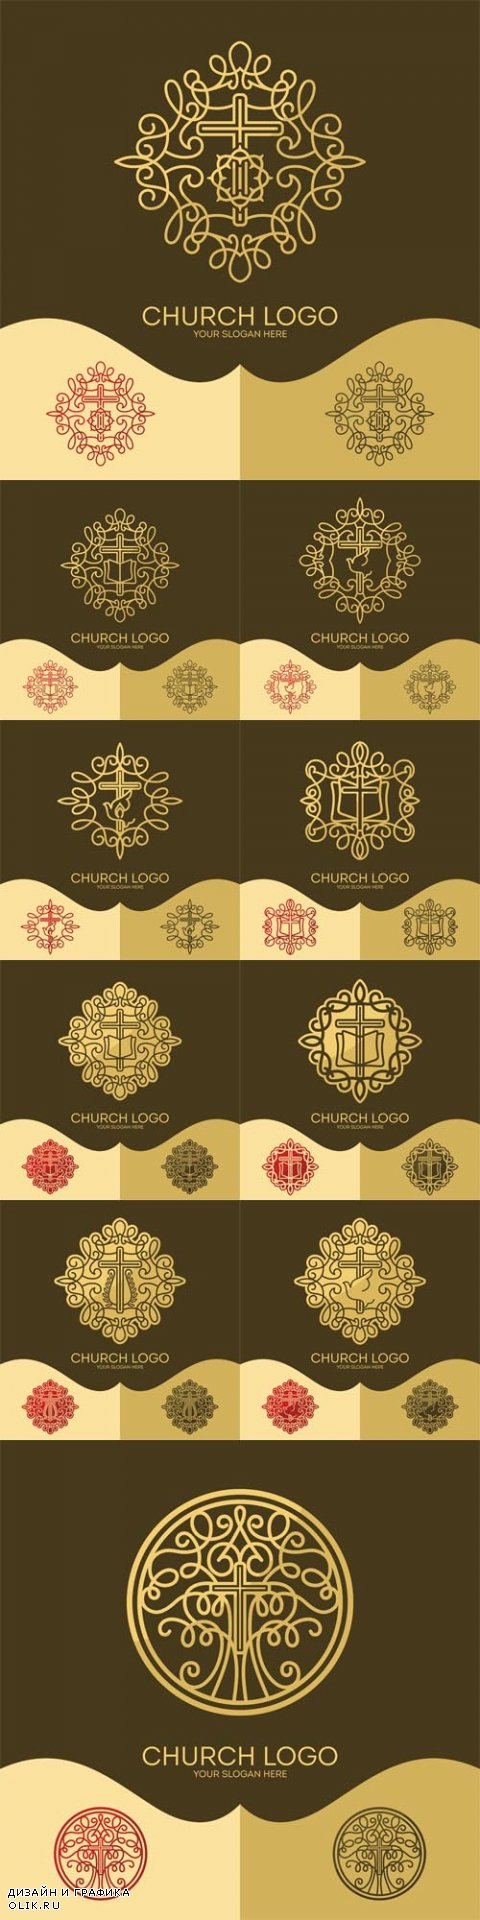 Vector Set - Church logo. Christian symbols. The cross of Jesus and elegant patterns